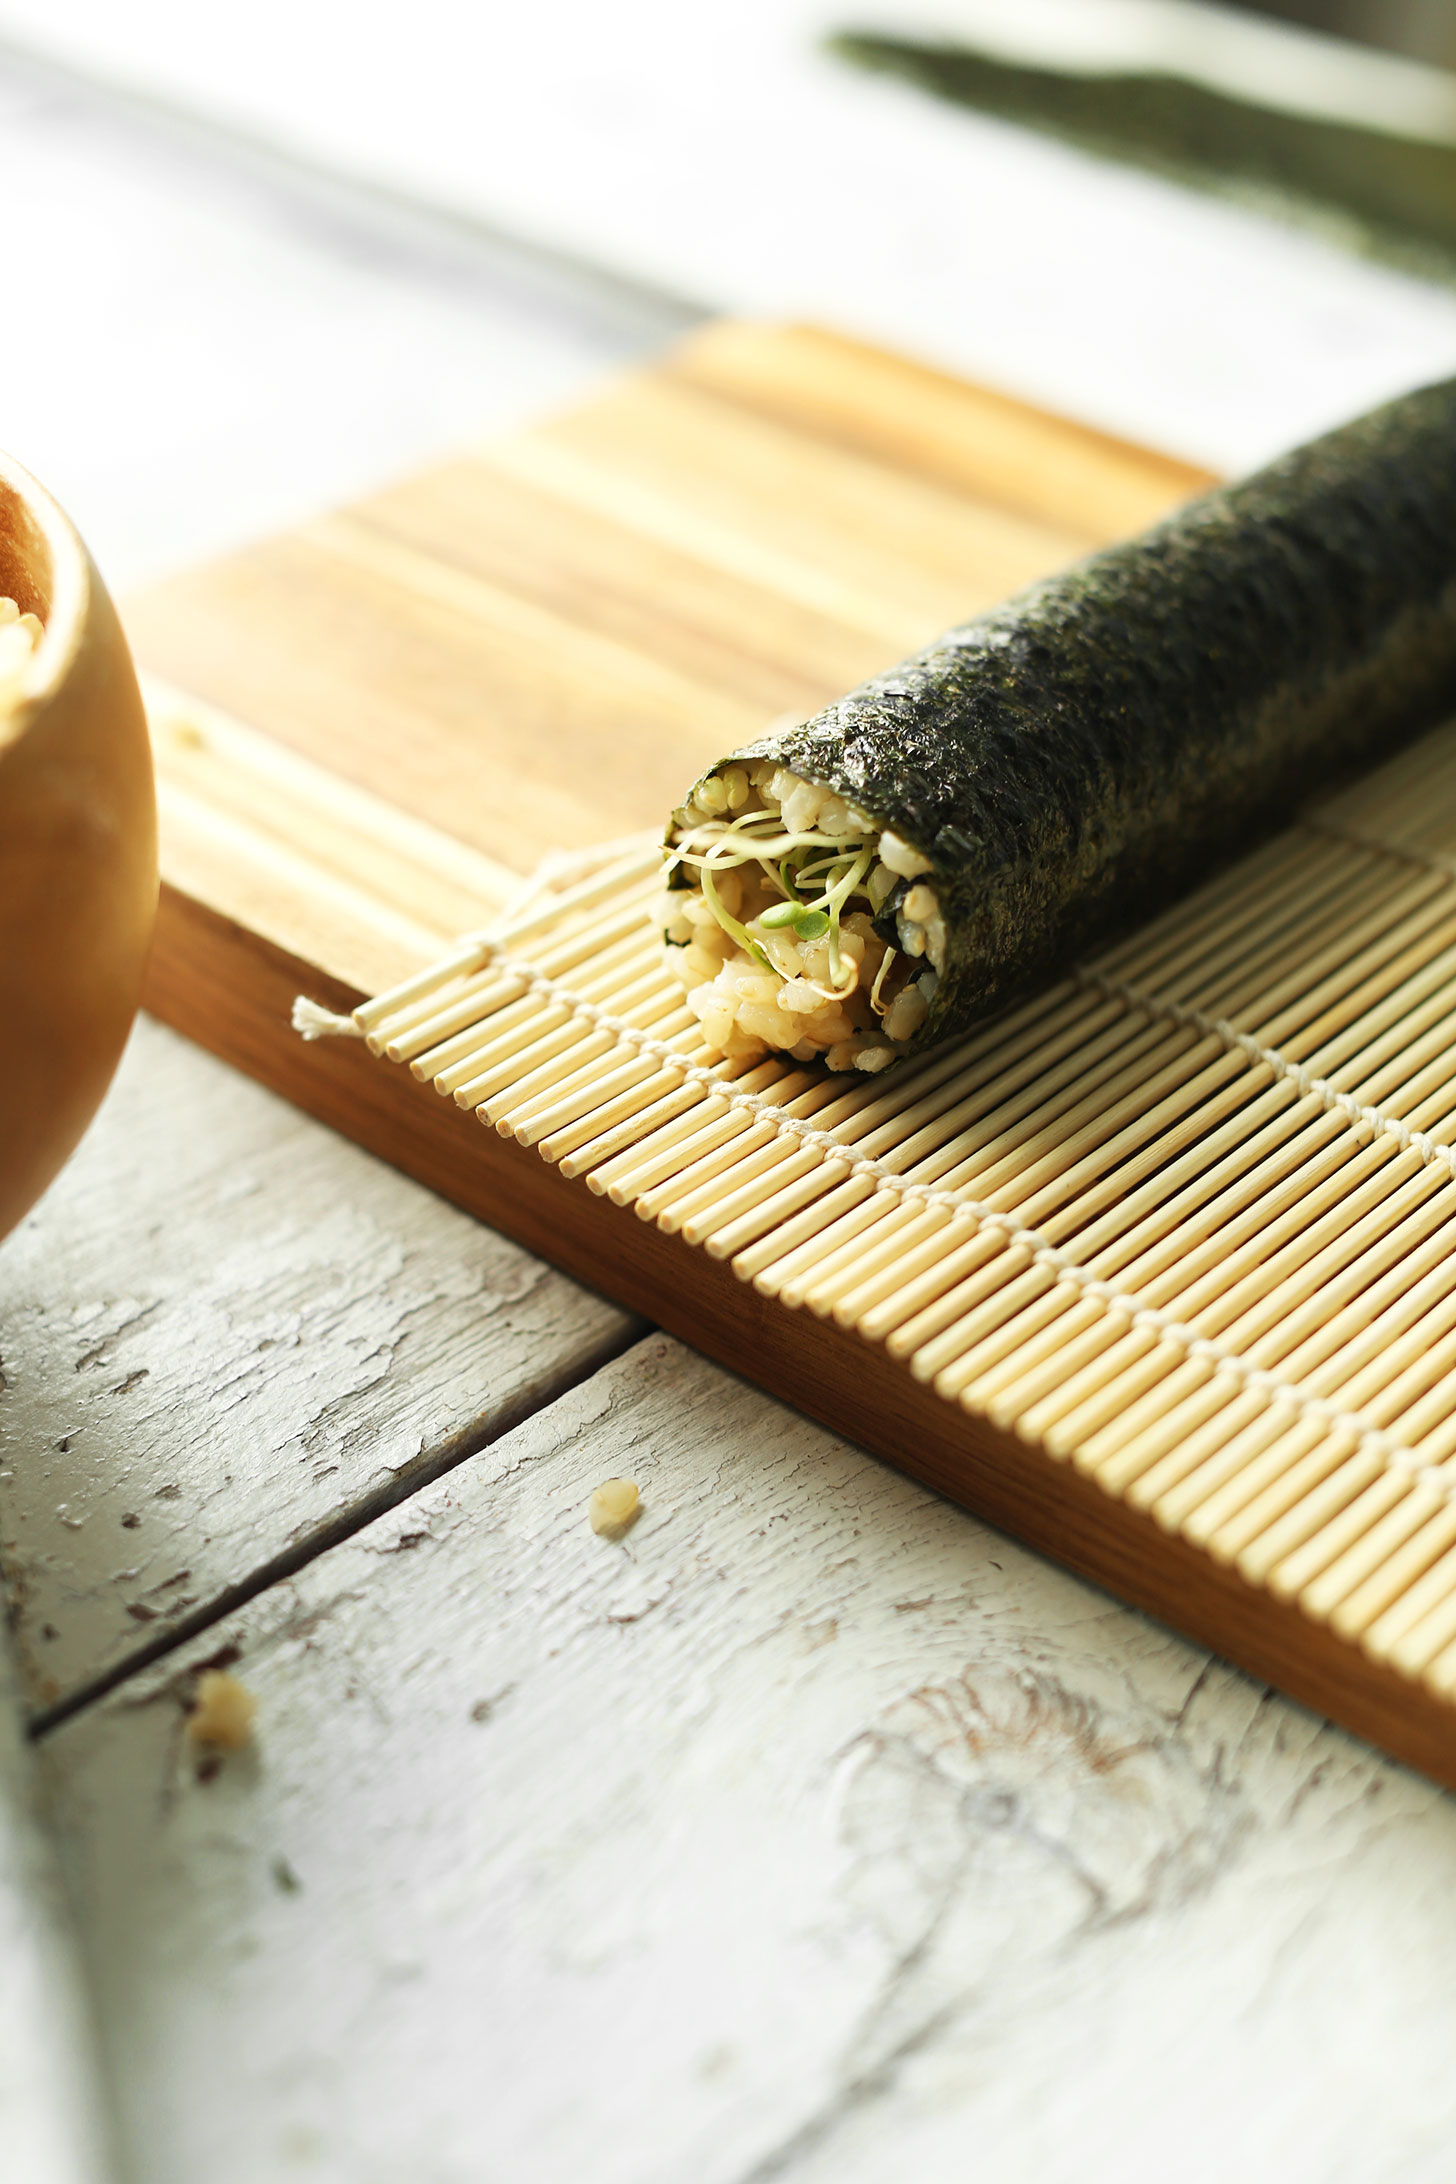 Perfectly rolled plant-based sushi on a bamboo mat